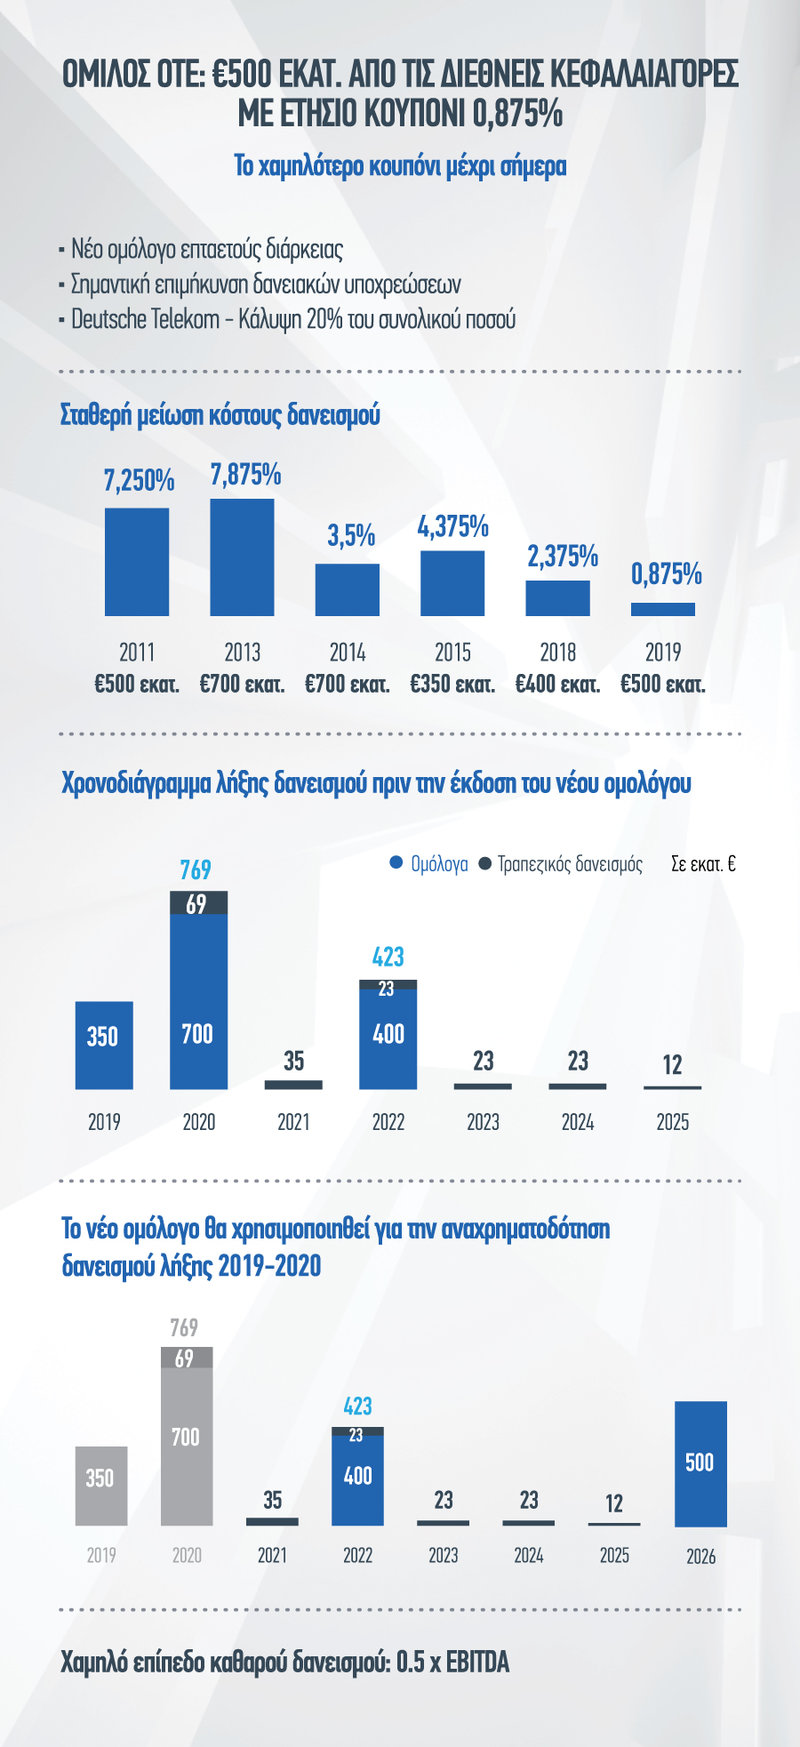 ote_group_new_bond_infographic_gr_iefimerida.jpg